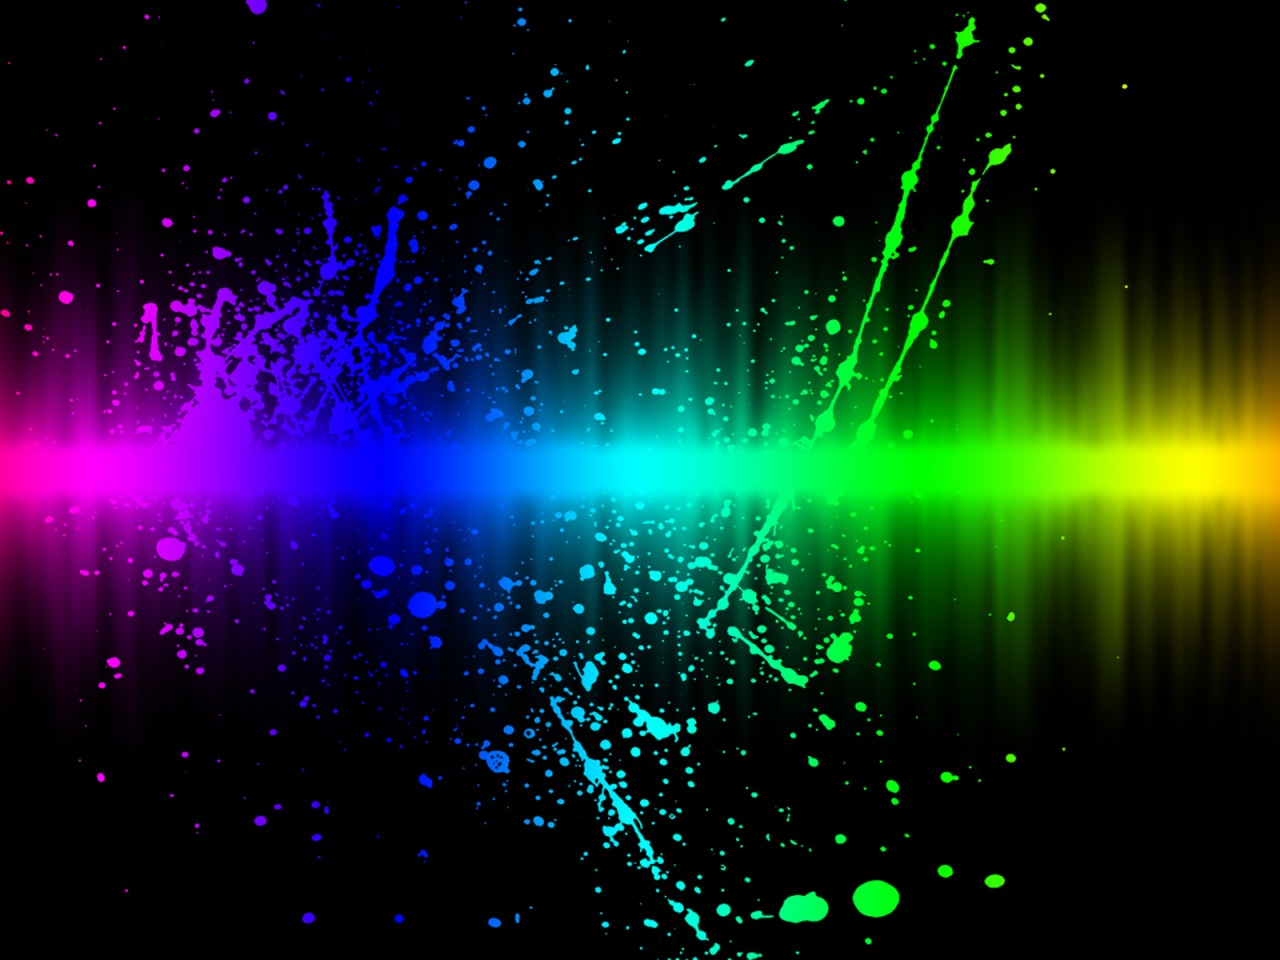 abstract wallpapers 1080p which is under the abstract wallpapers 1280x960